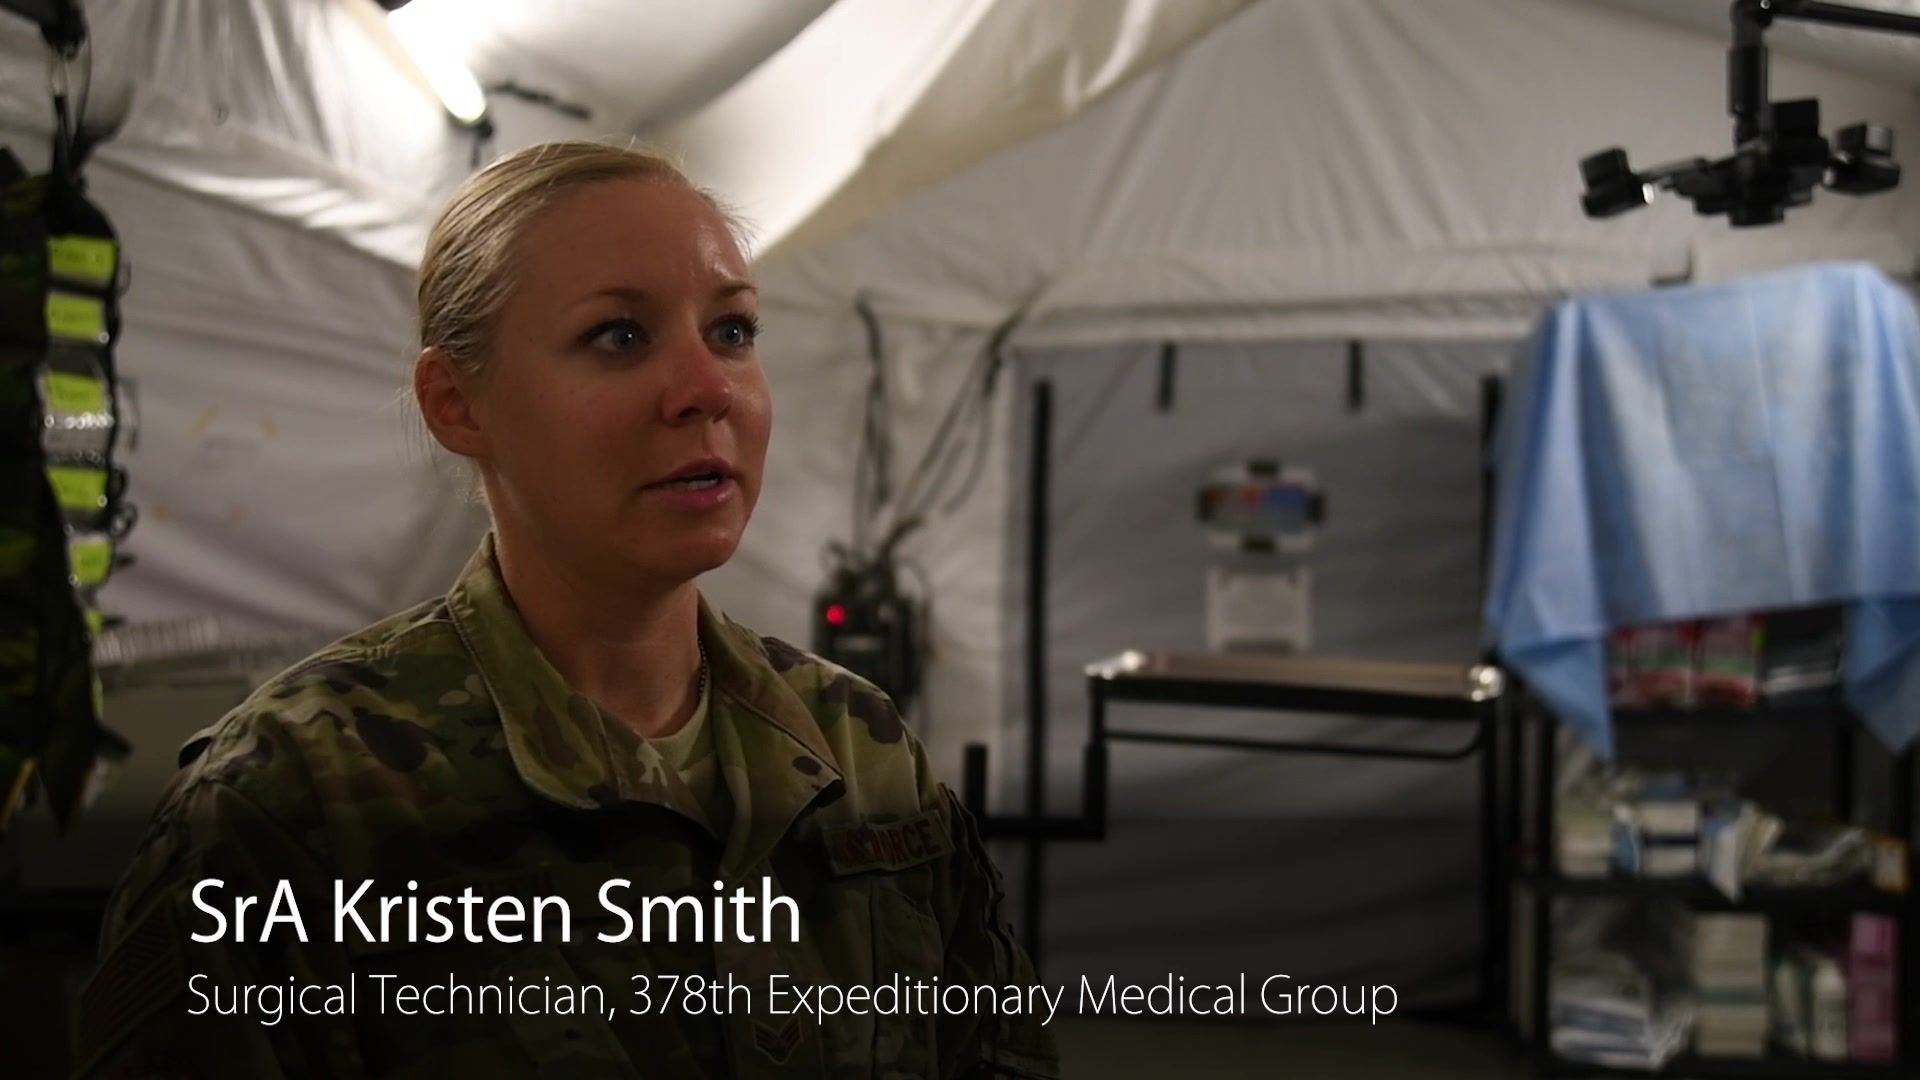 SrA Kristen Smith arrived with the original expeditionary medical team at Prince Sultan Air Base. She played a vital role in building the operating room for the 378th Expeditionary Medical Group.